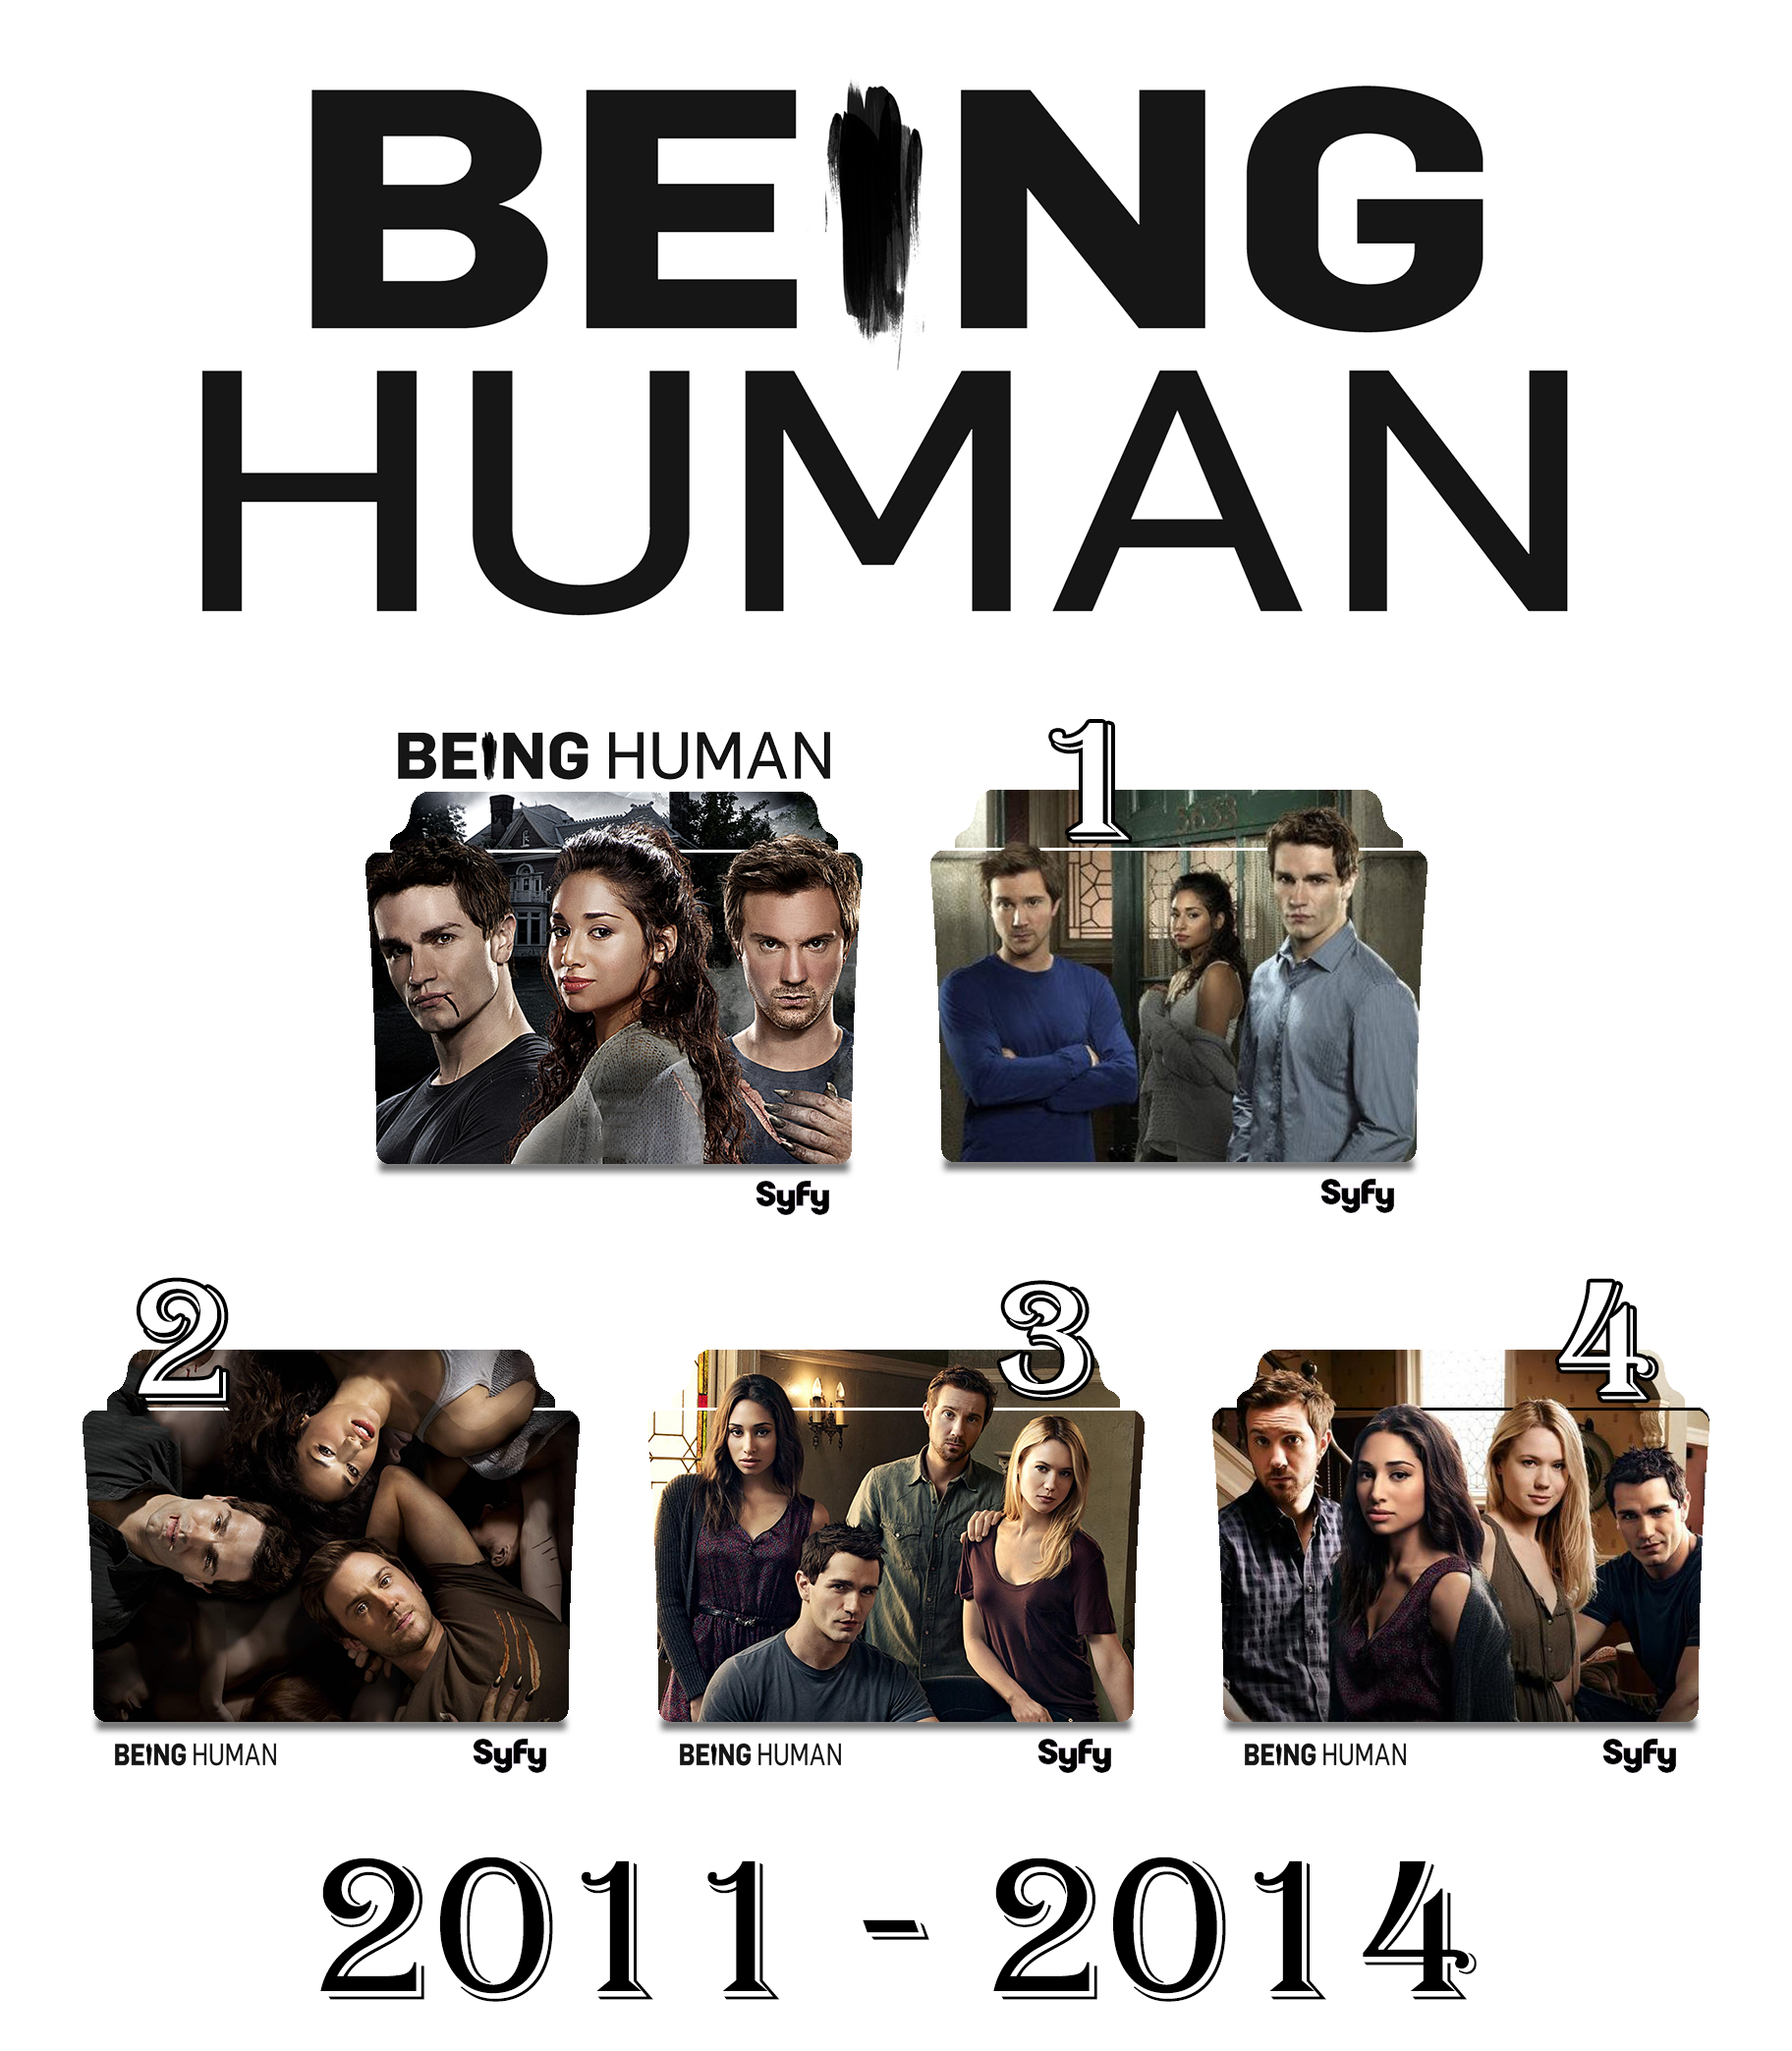 Being Human (US) series and season folder icons by Vamps1 on